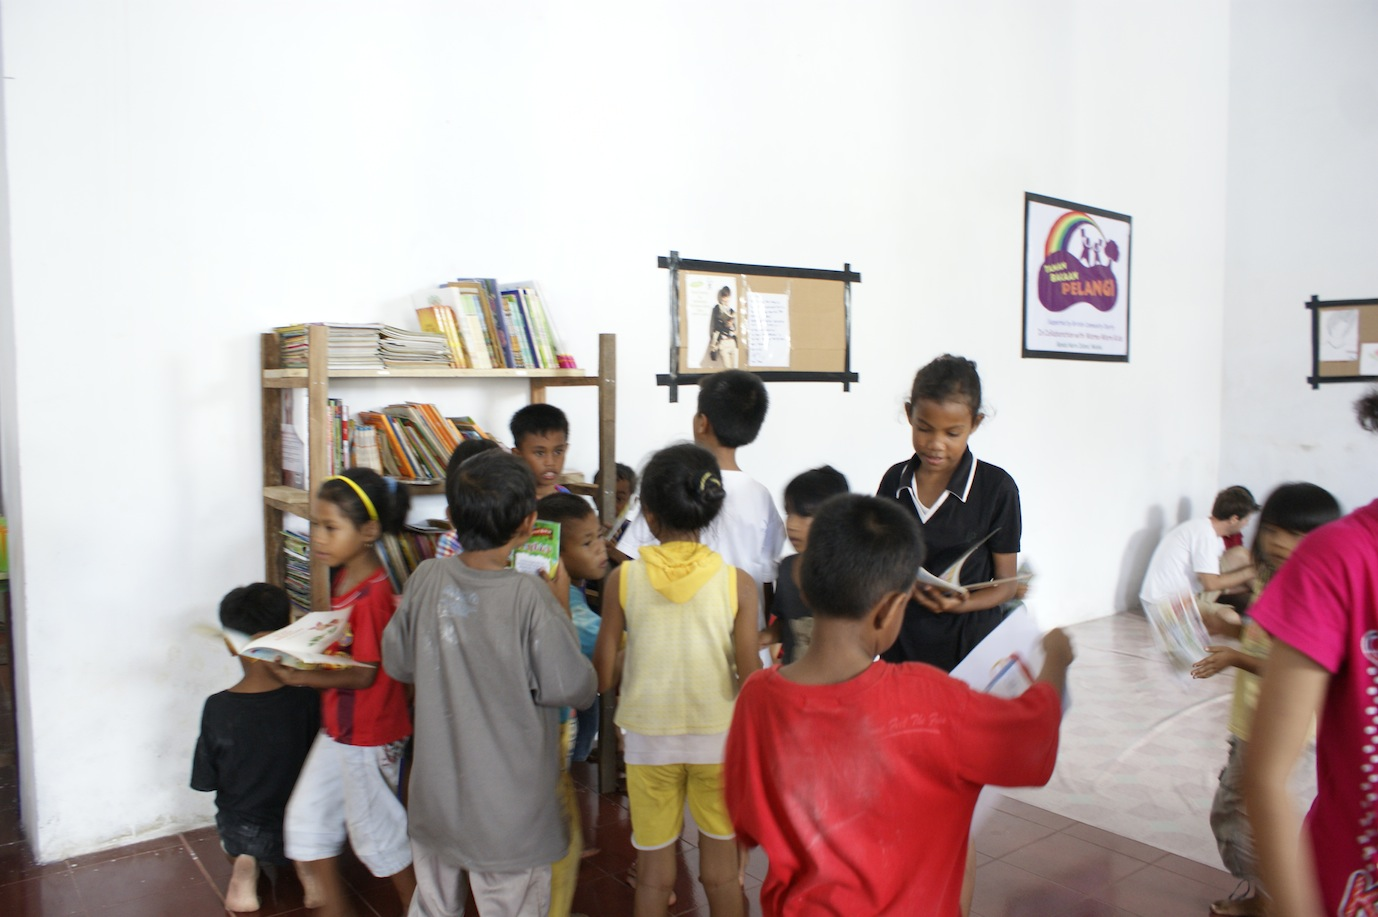 kids got excited with books at Taman Bacaan Pelangi in Banda Neira, Maluku